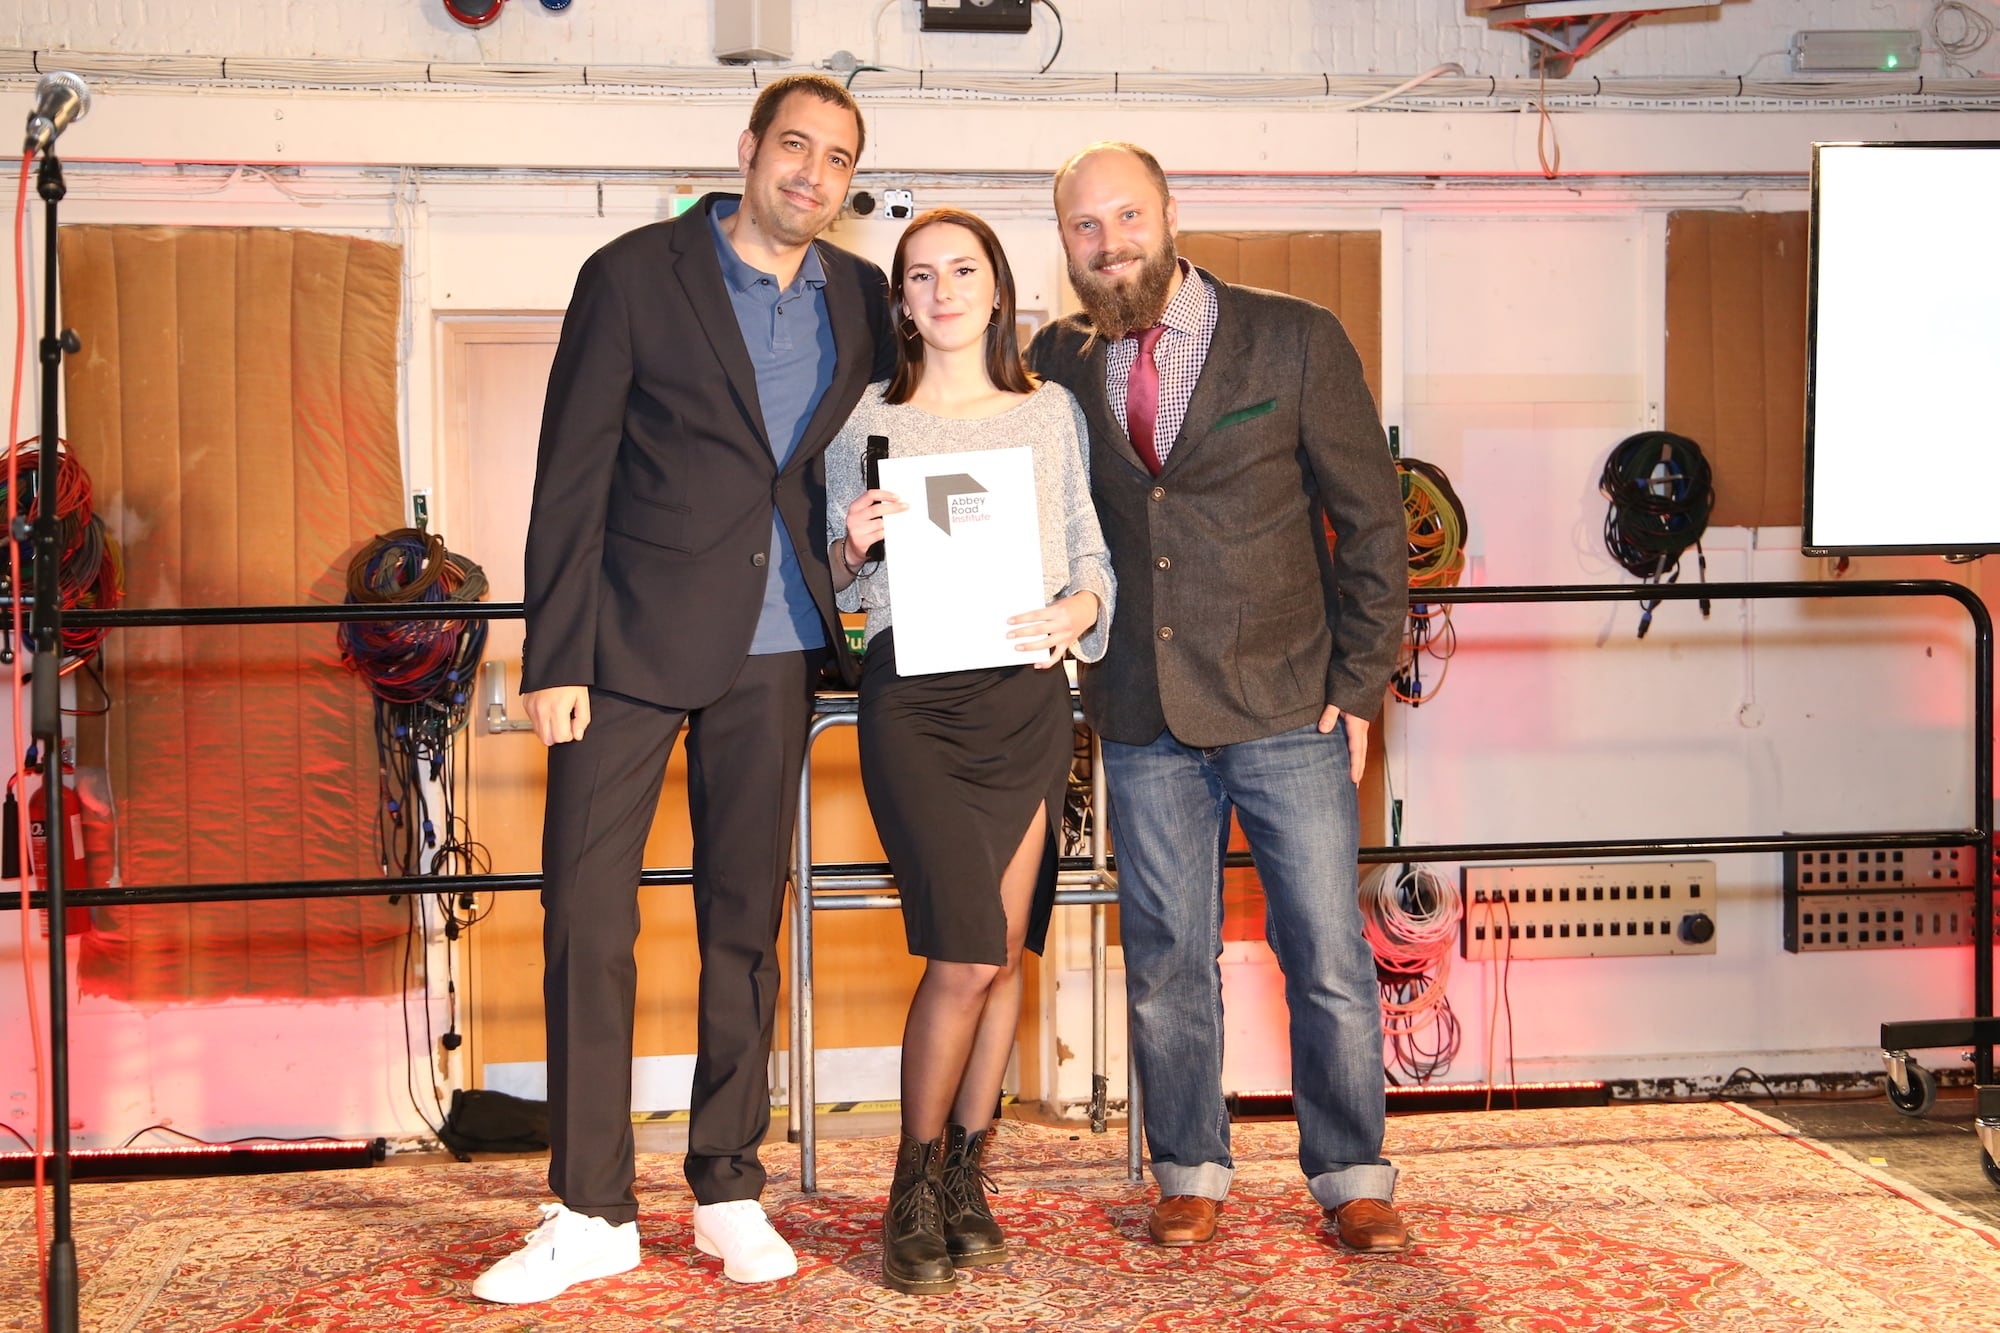 Berlin student receiving her diploma at Abbey Road Studios